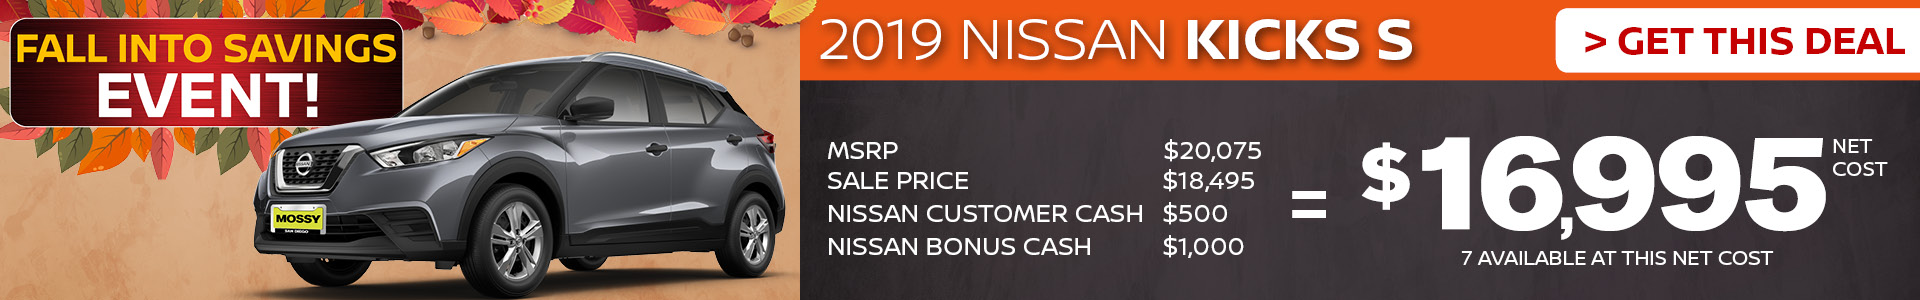 Mossy Nissan - Nissan Kicks $16,995 Purchase